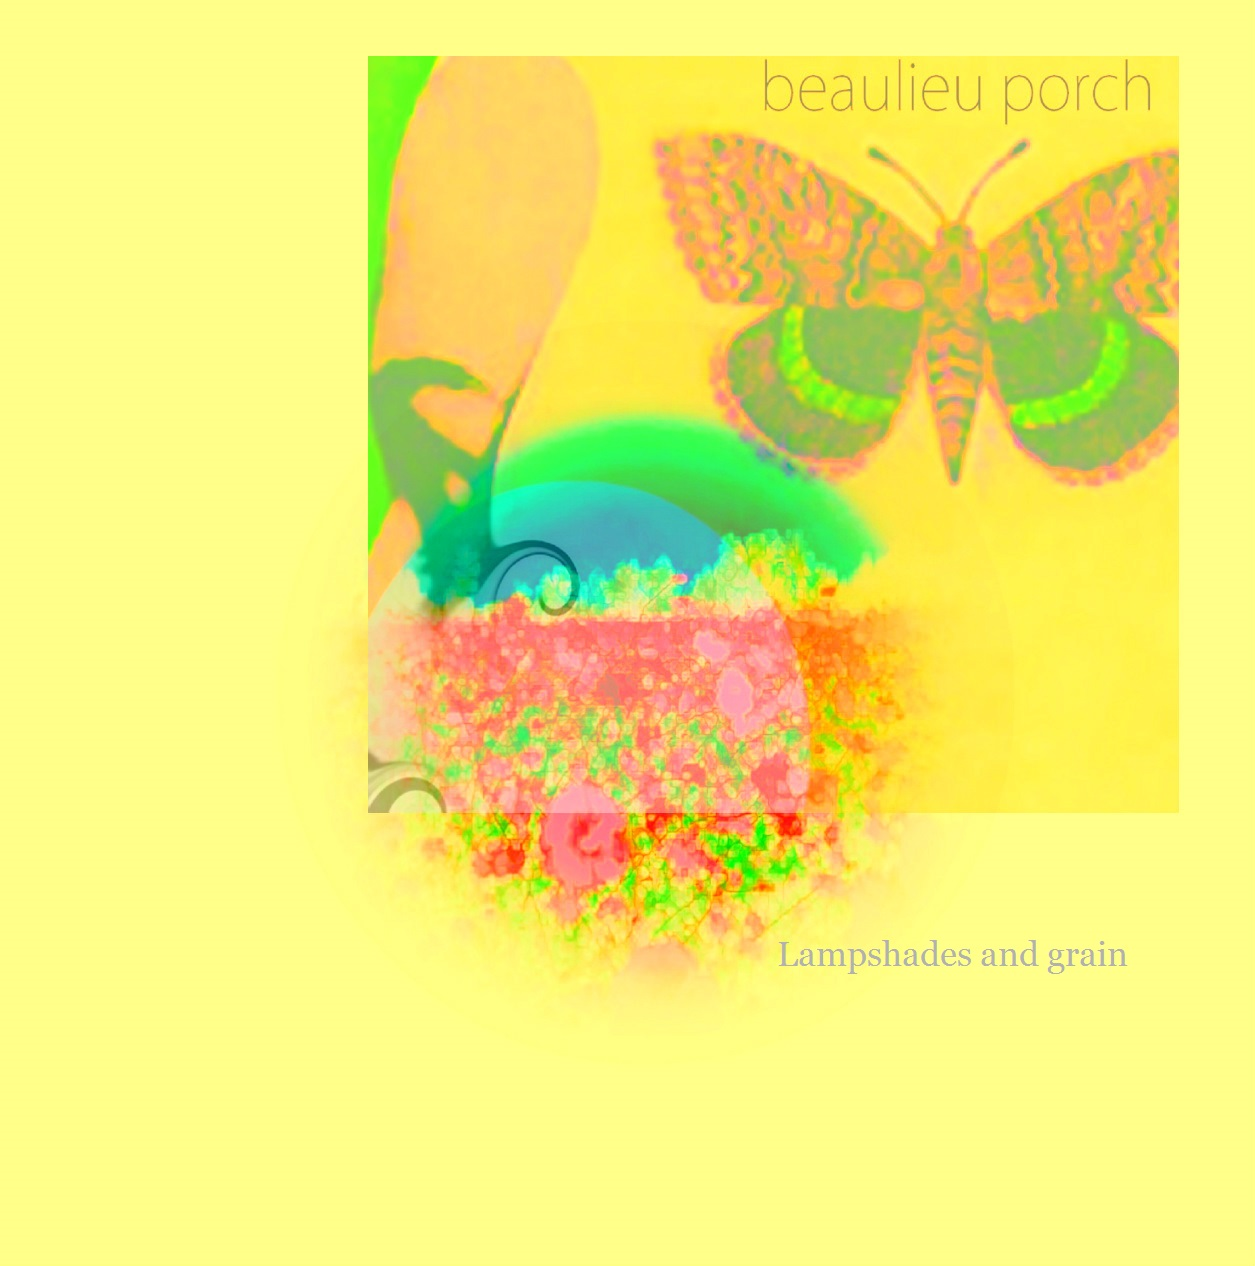 http://indiemusicpeople.com/Uploads/Beaulieu_Porch_-_bp1a.jpg